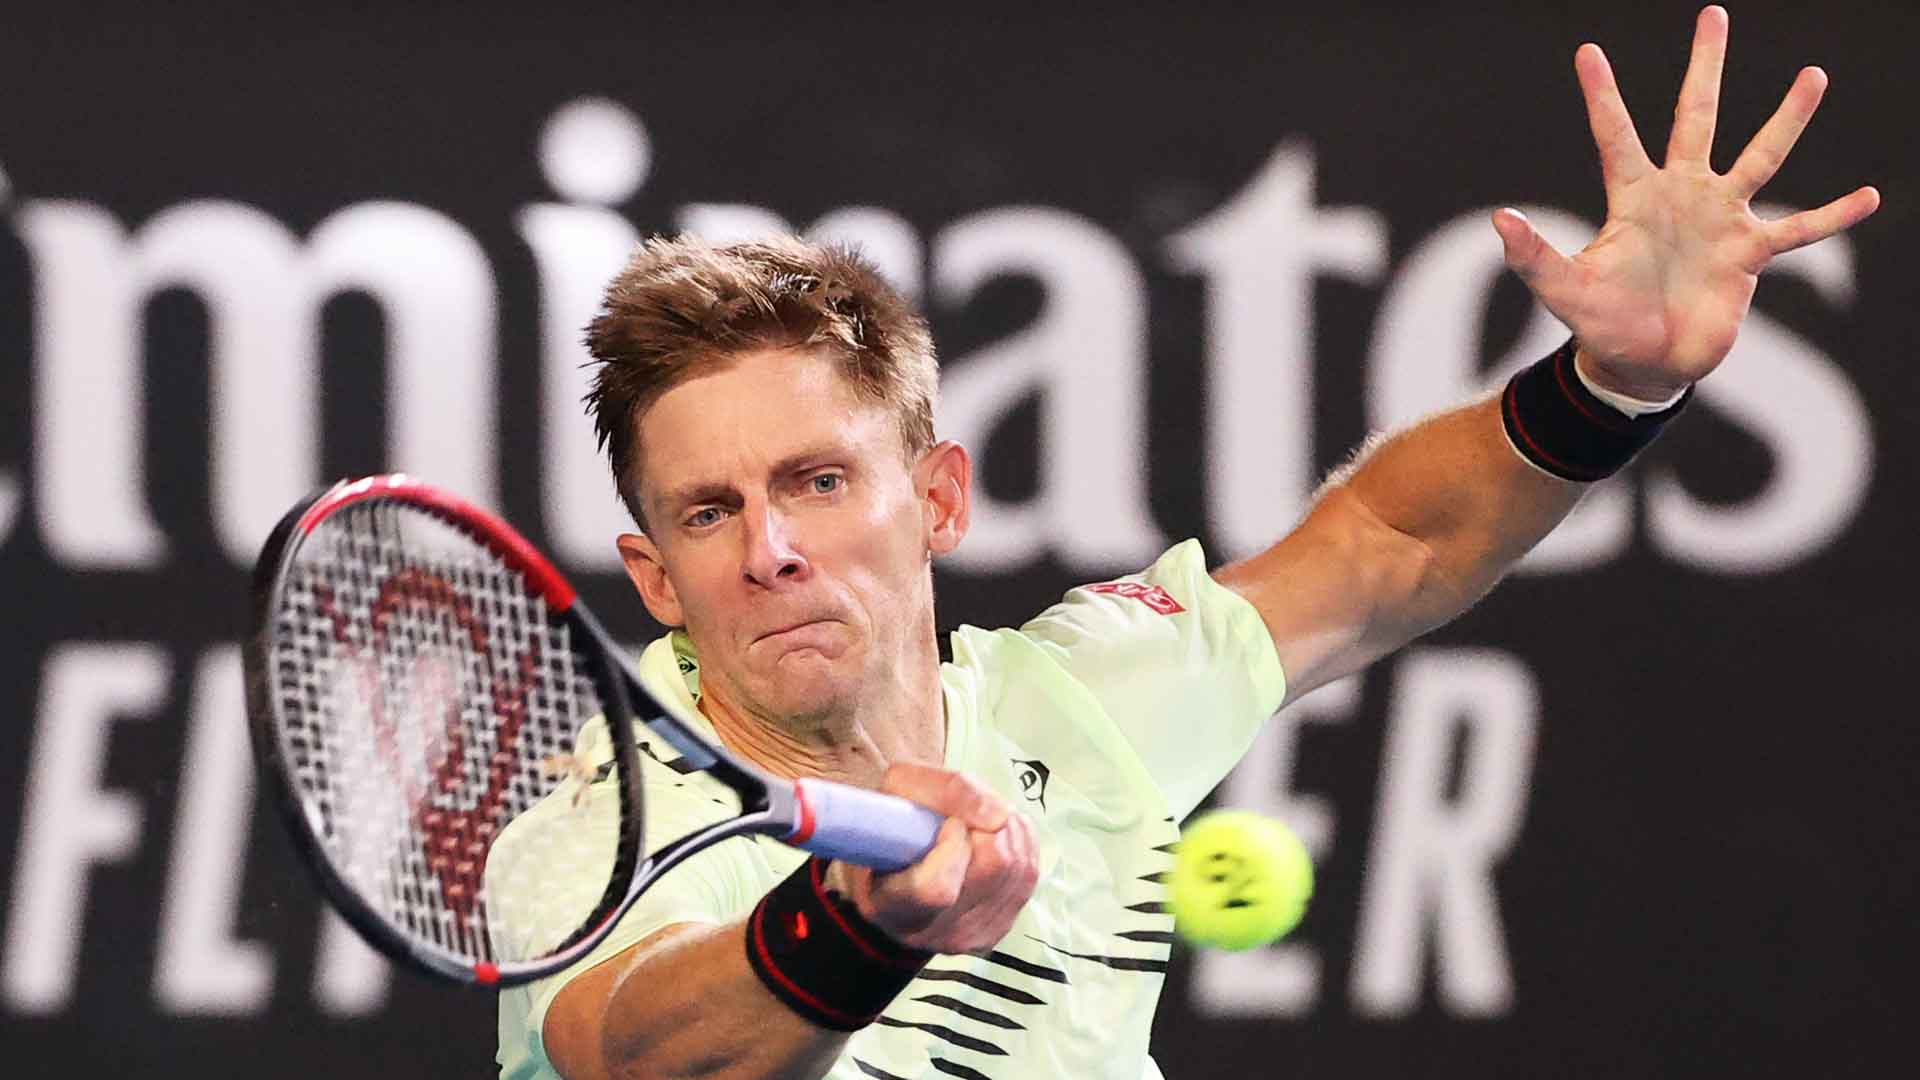 Kevin Anderson improves to 13-11 at the Australian Open.